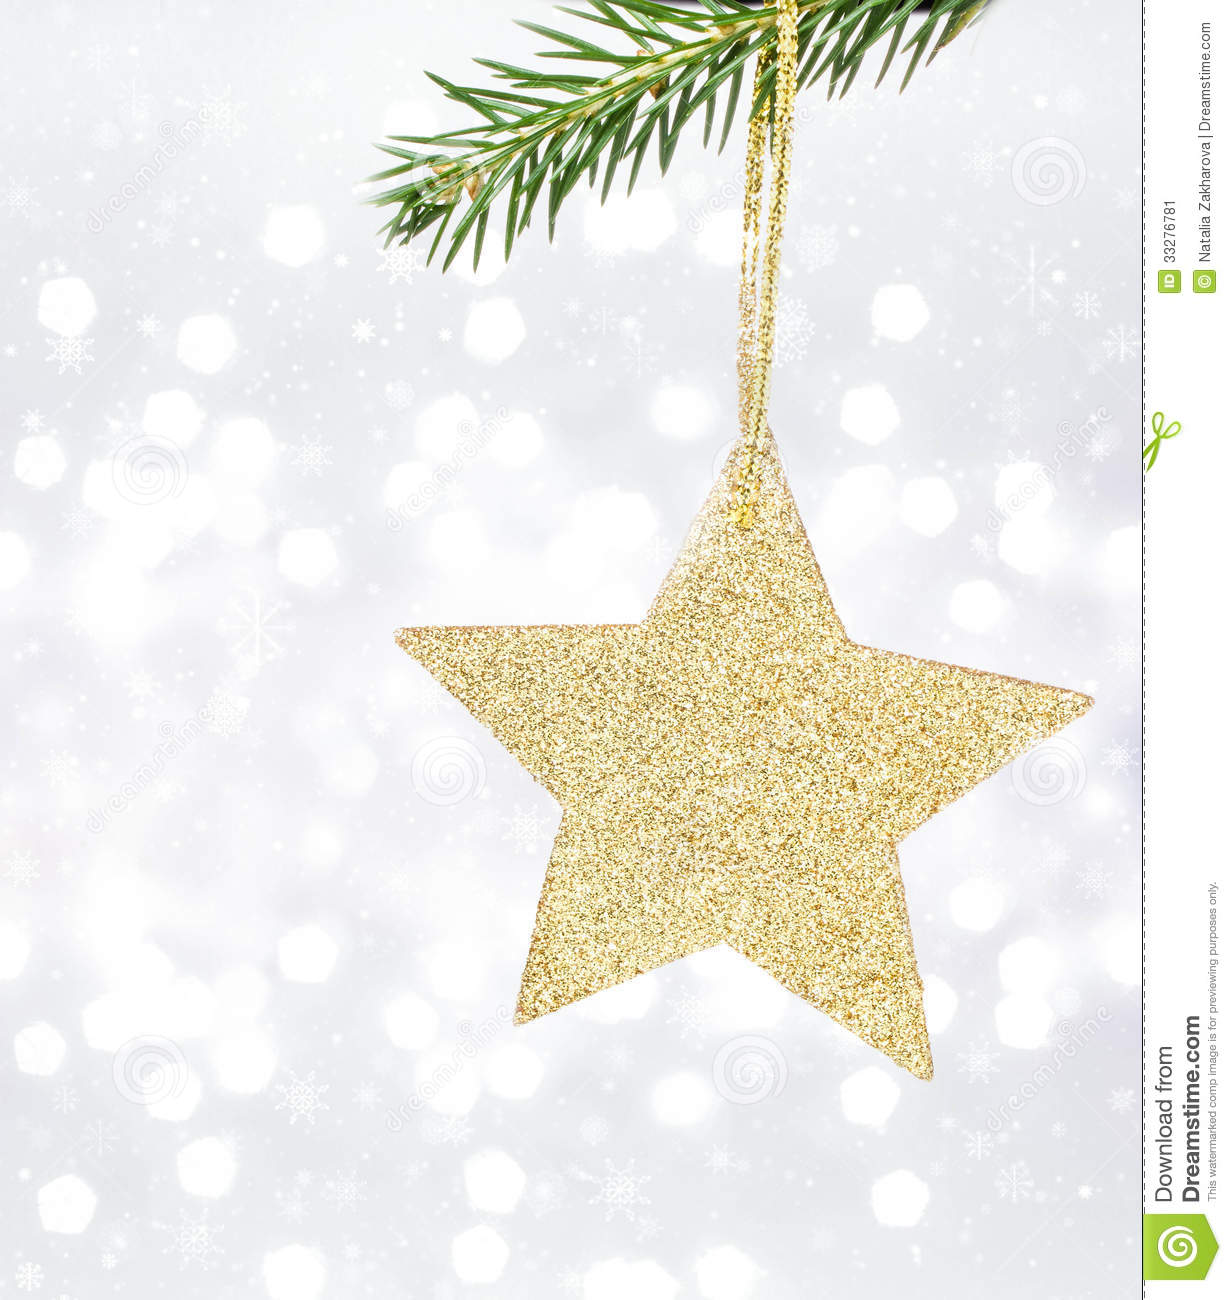 Christmas Card With Golden Star And Pine Branch On